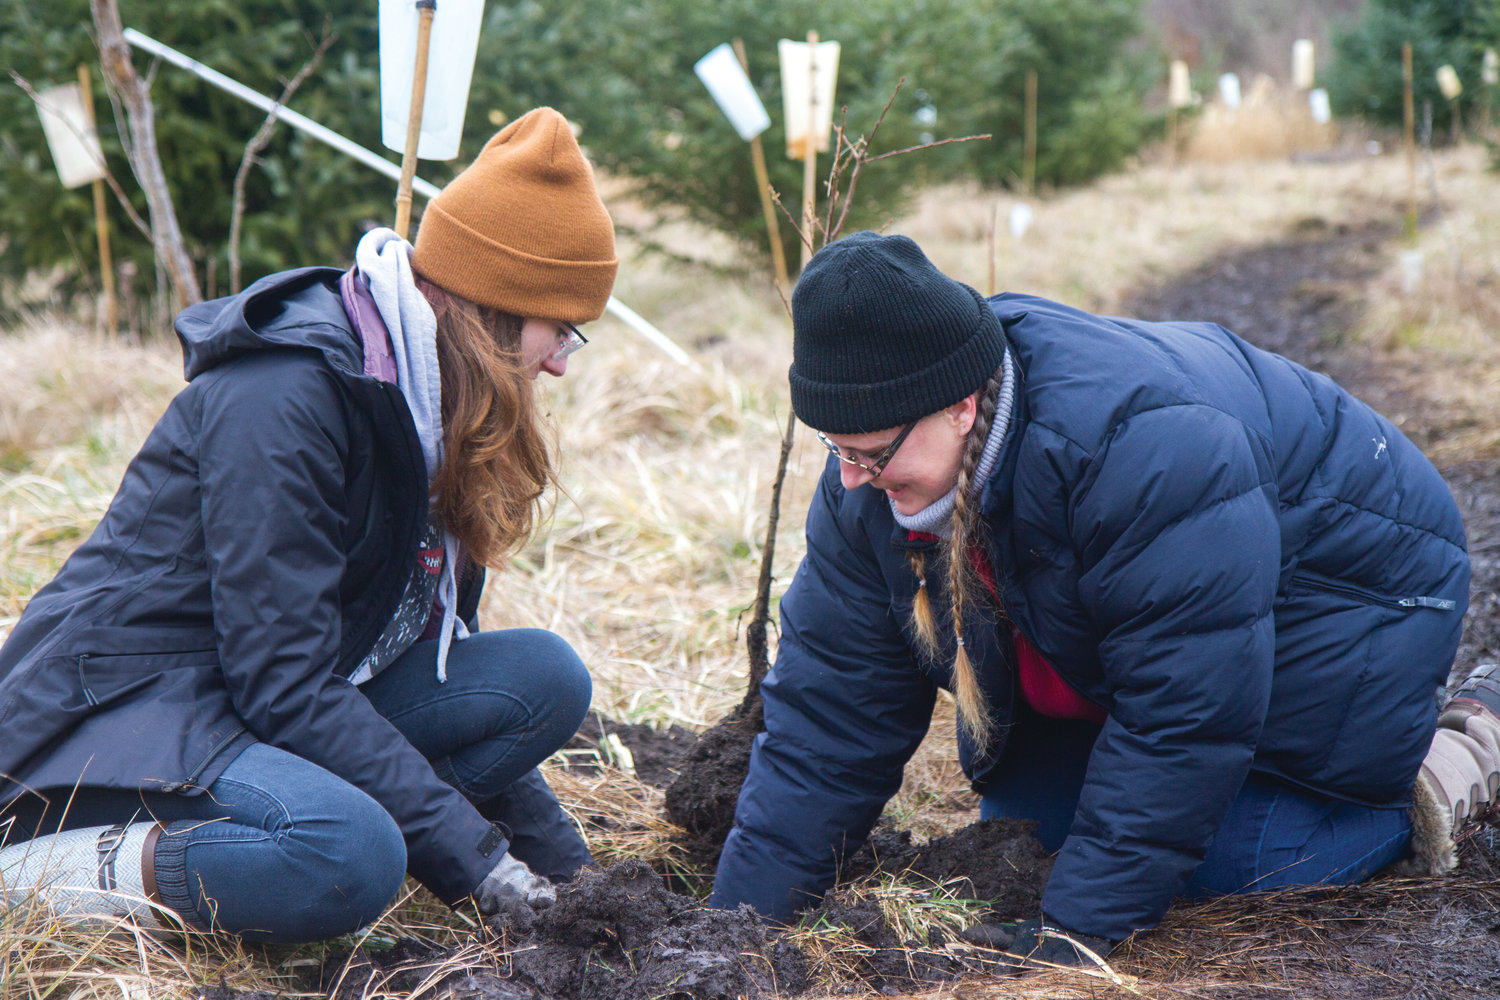 Karyn Hulse, left, and Krystan Hampton were not afraid to get muddy while planting saplings at the Plant-A-Thon.